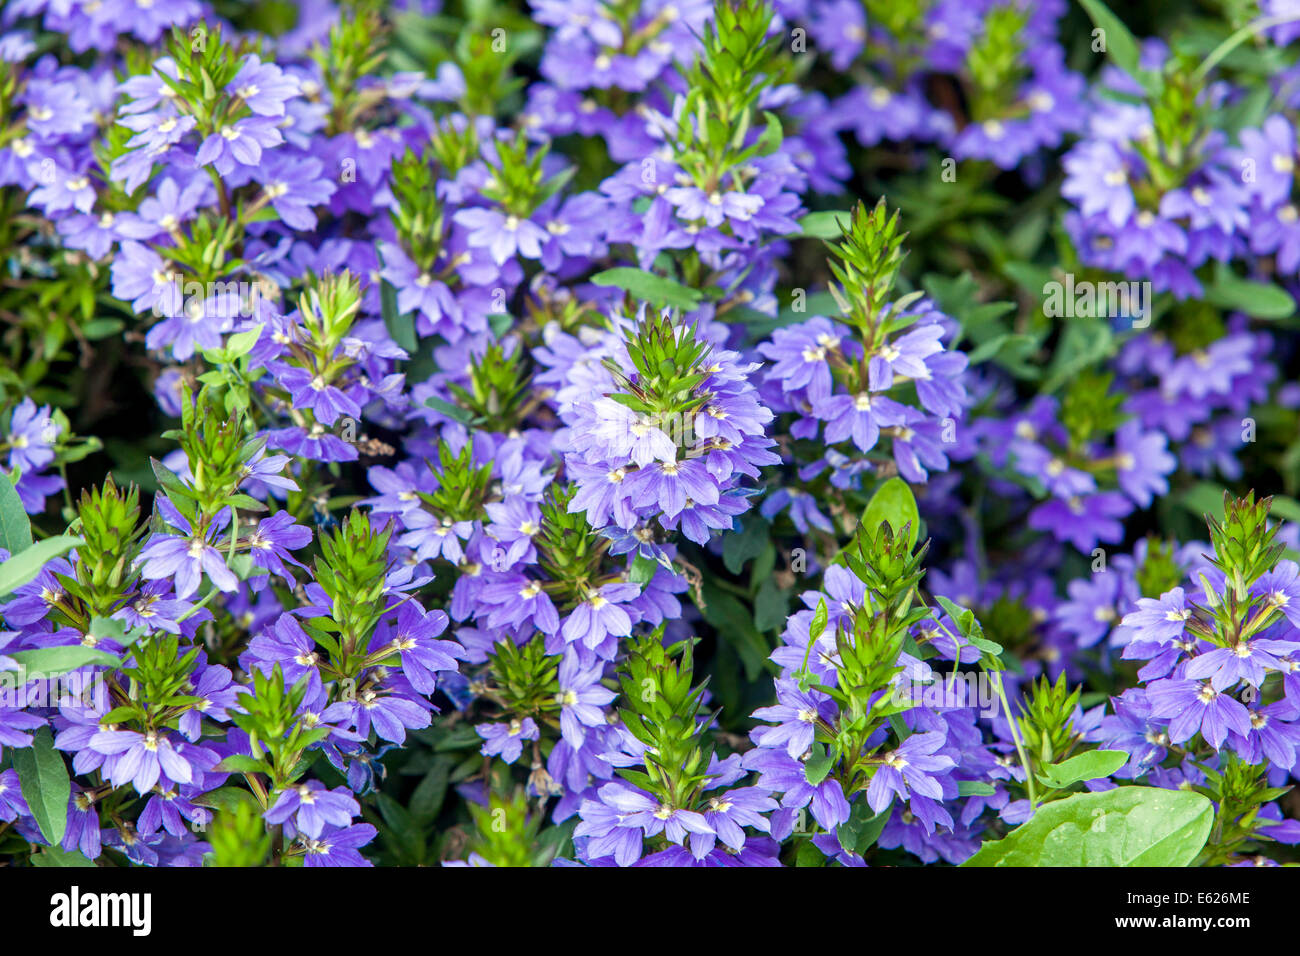 Variegated leaf leaves plant plants blue flower flowers stock photos colorful flower bed of annual flowers scaevola eamula stock image izmirmasajfo Image collections